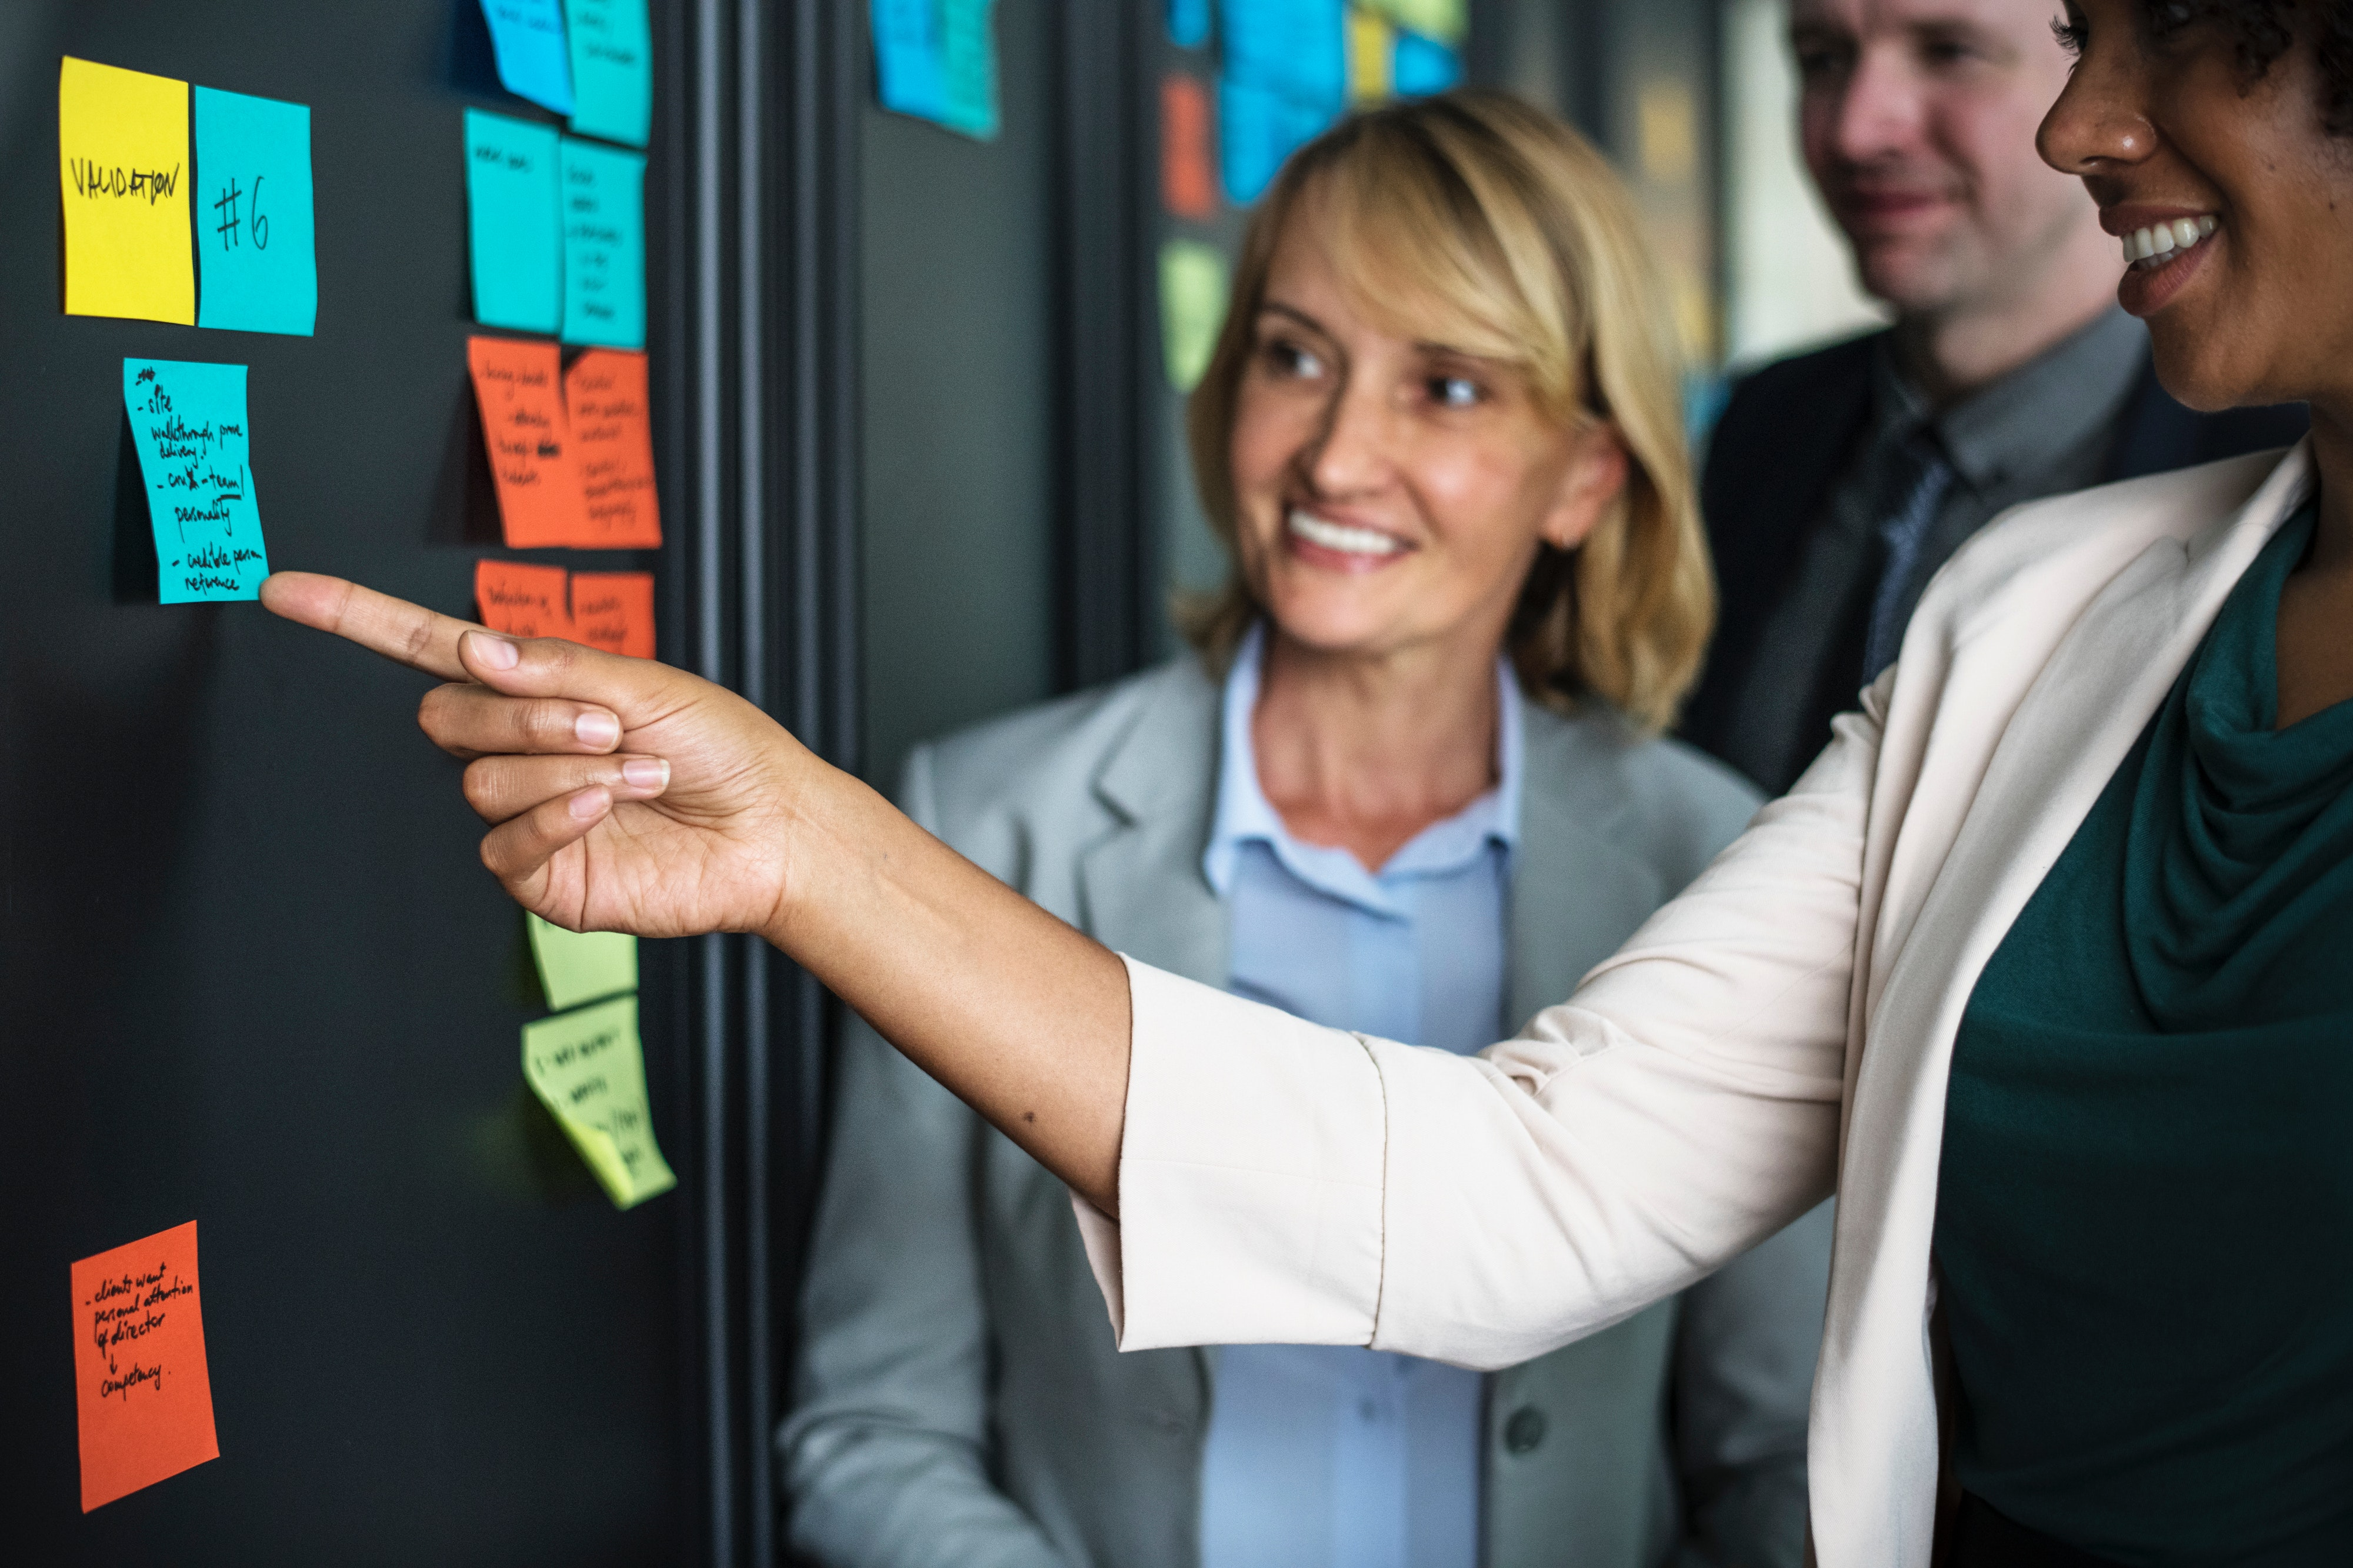 Employees, working, discussing topics on post-it notes